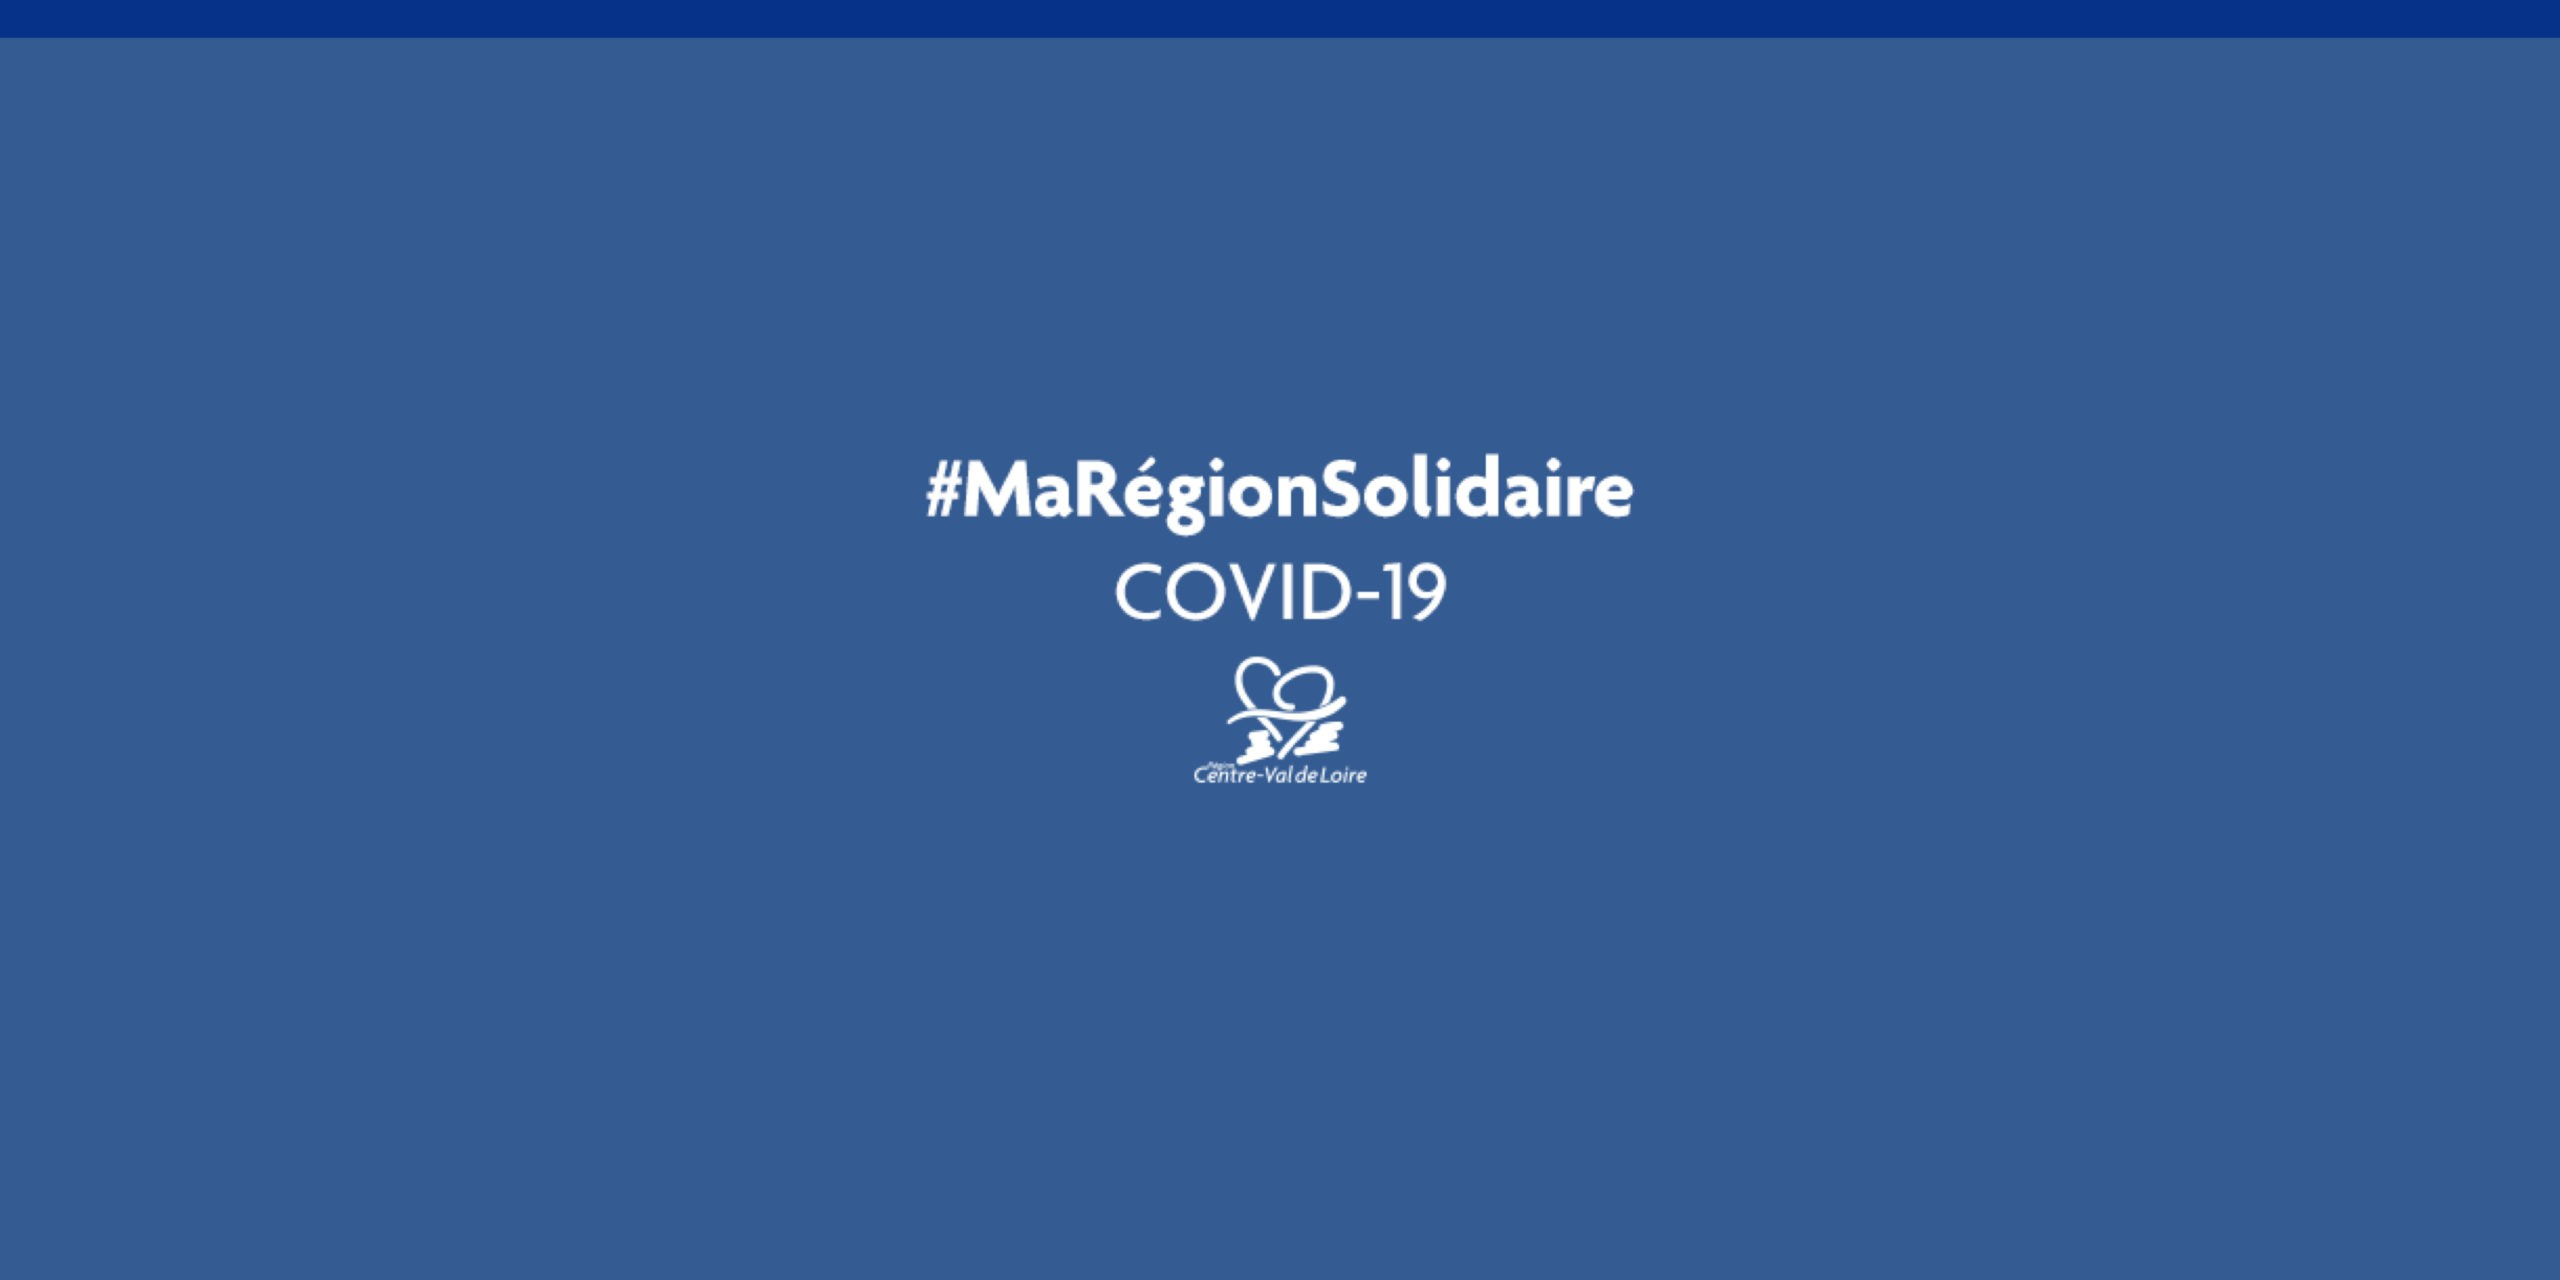 #MaRégionSolidaire